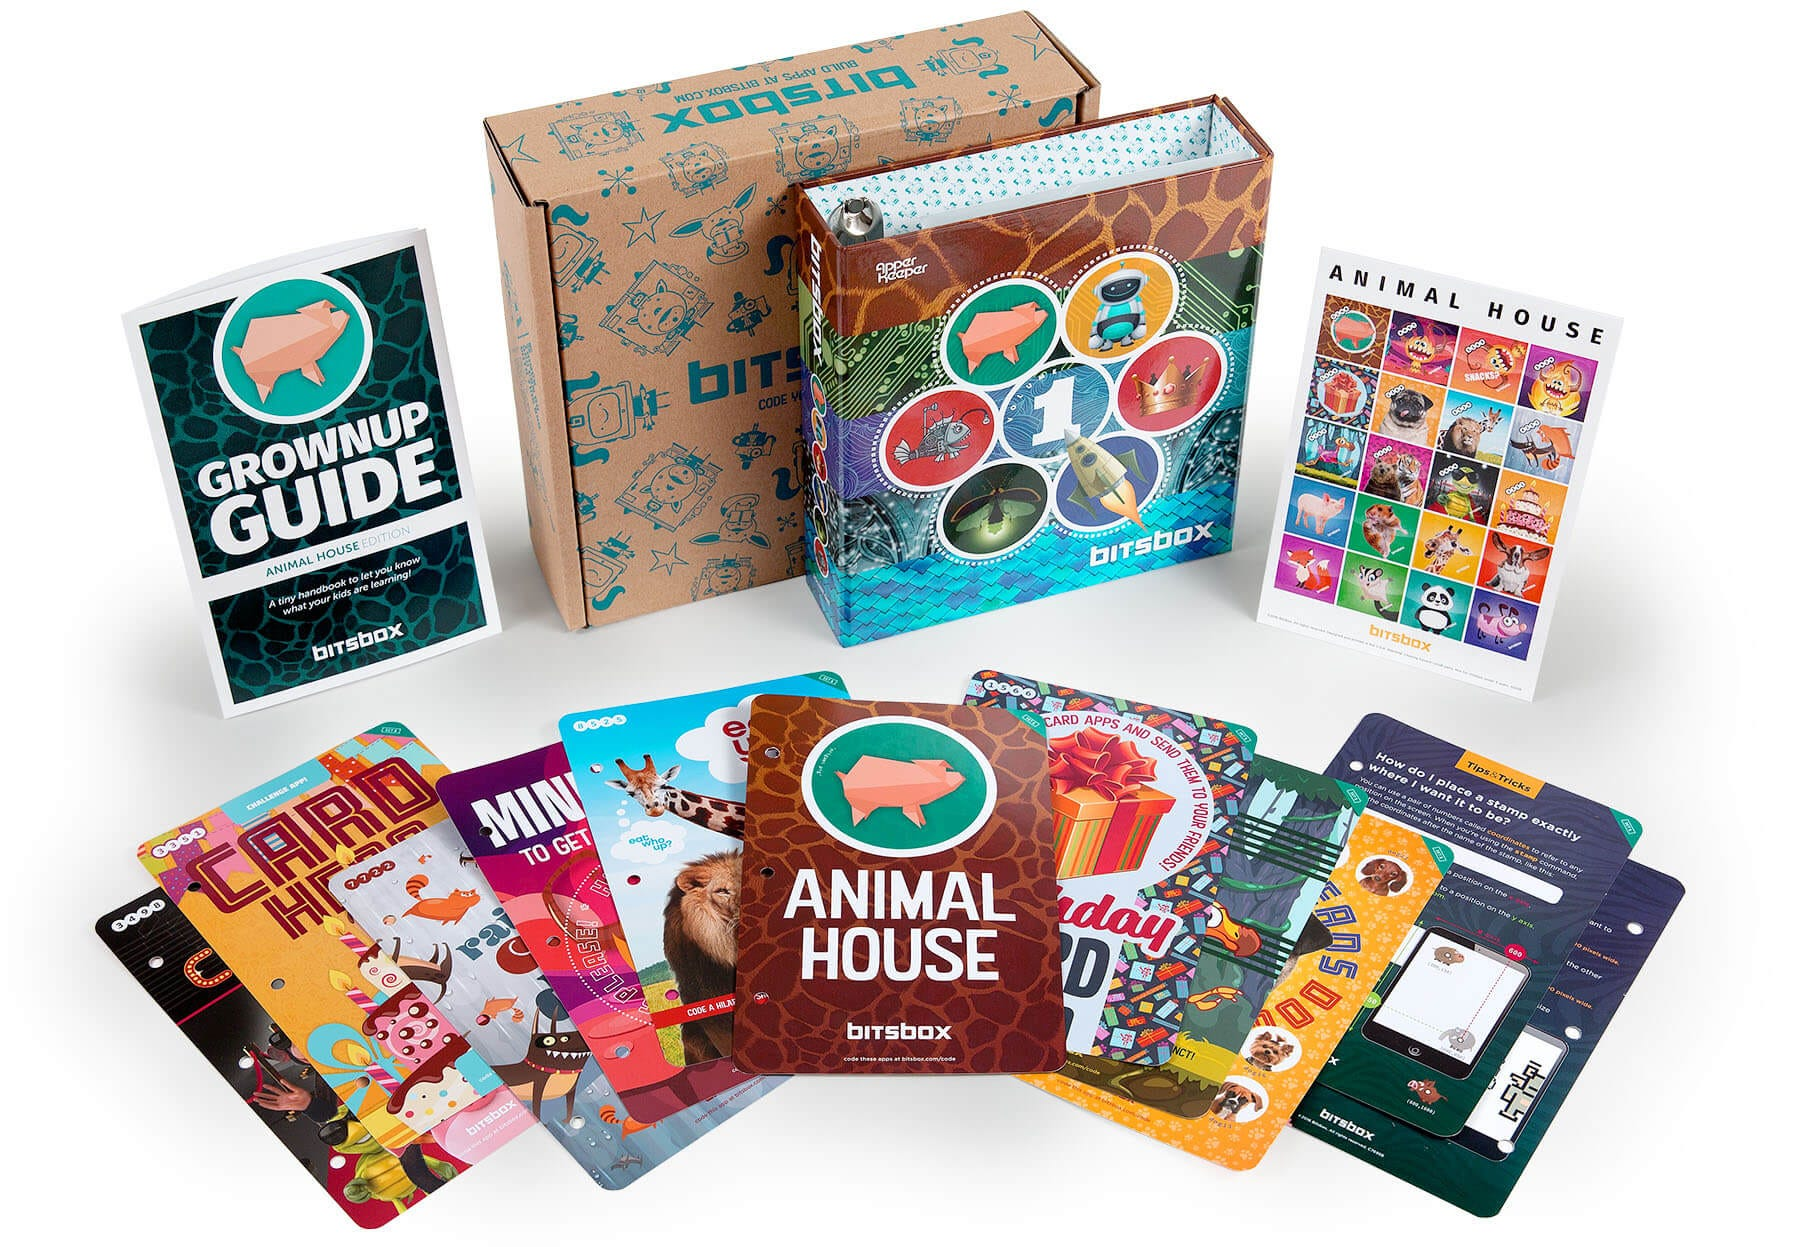 A BitsBox box with colorful coding cards fanned out in front of the box